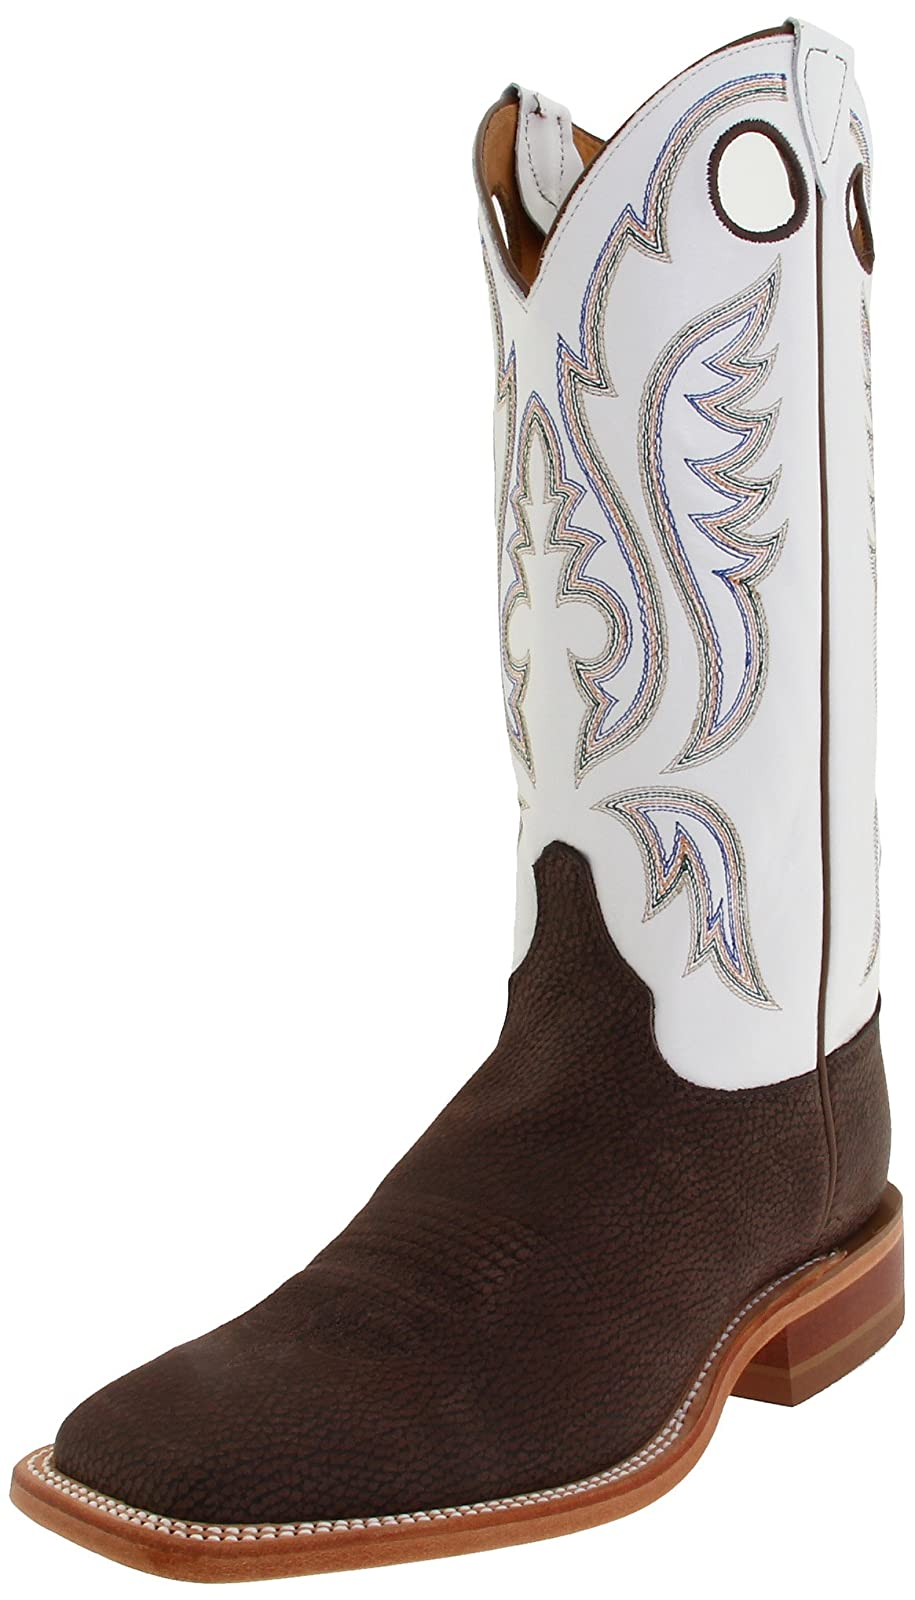 Justin Boots Men's U.S.A. Chocolate Bisonte/White Classic - 1